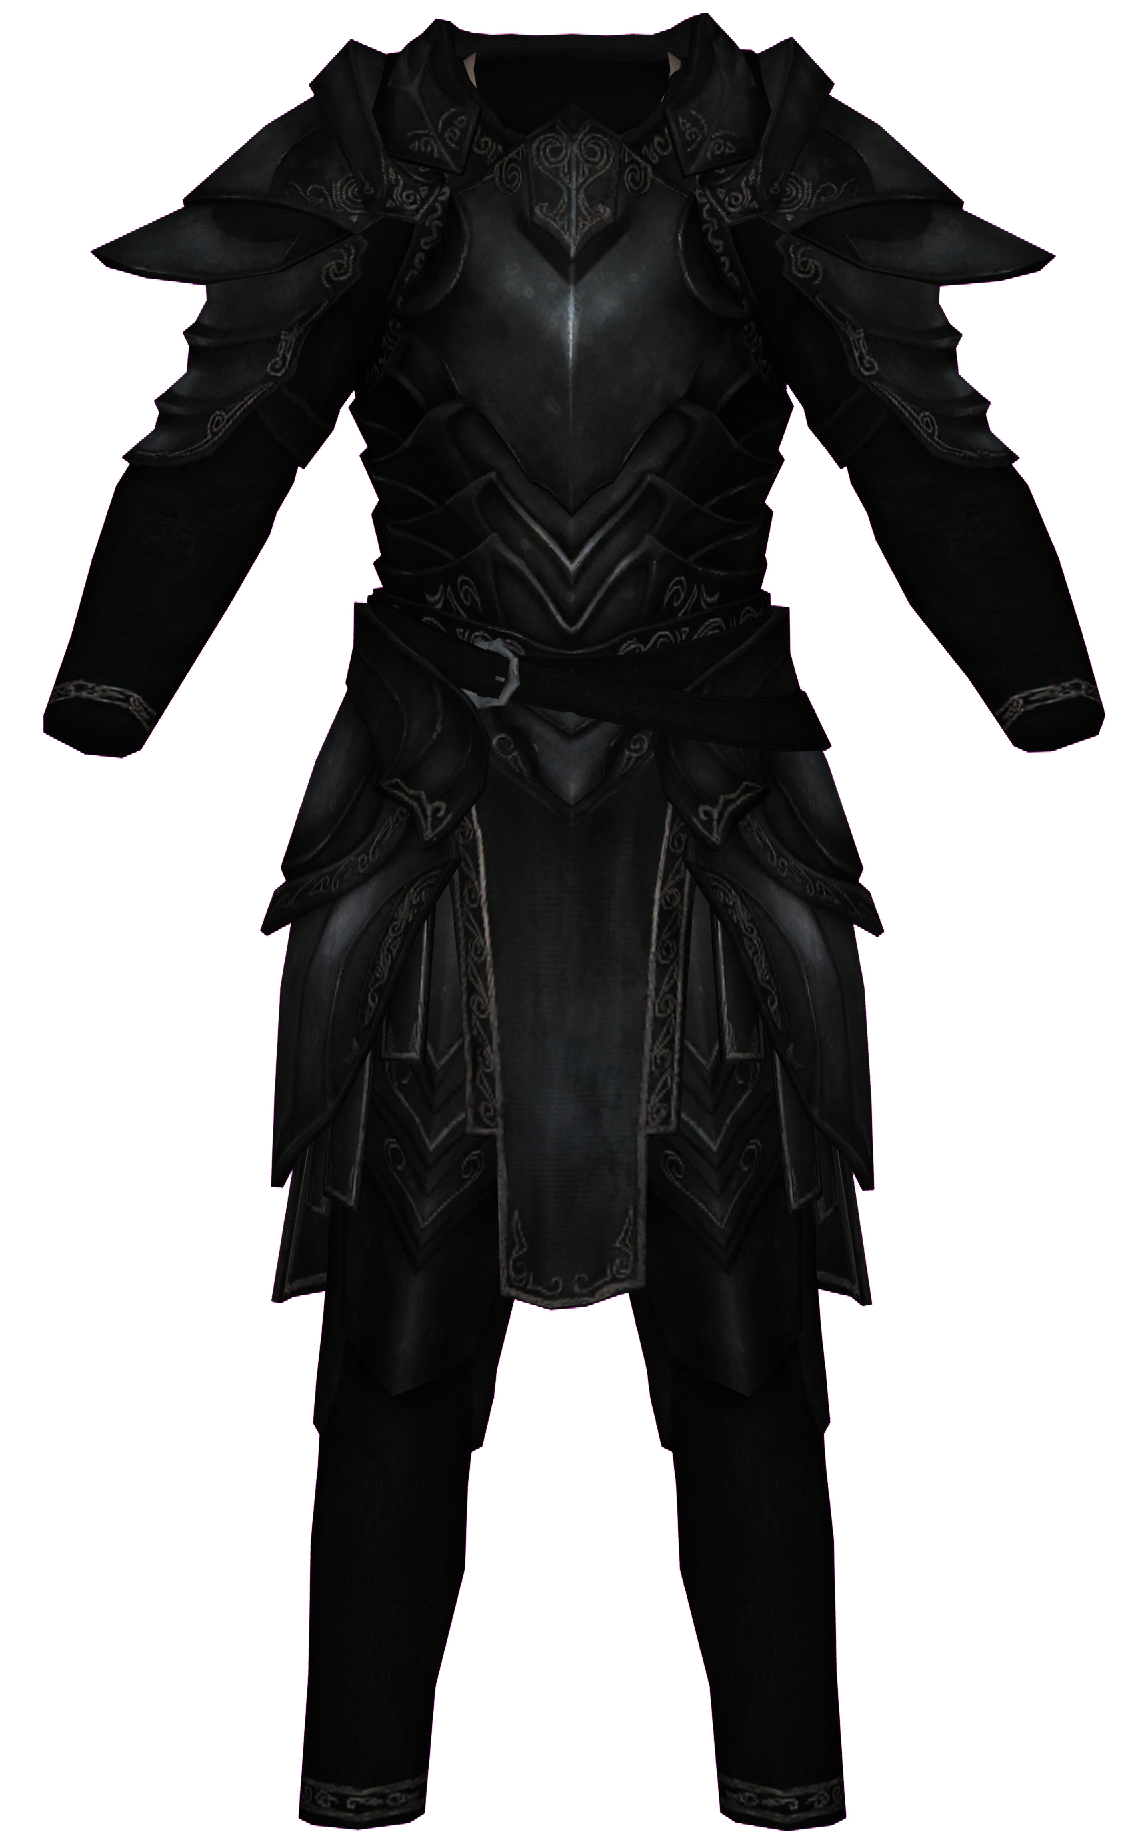 Skyrim. Ebonite armor. Where to find and what to do with it